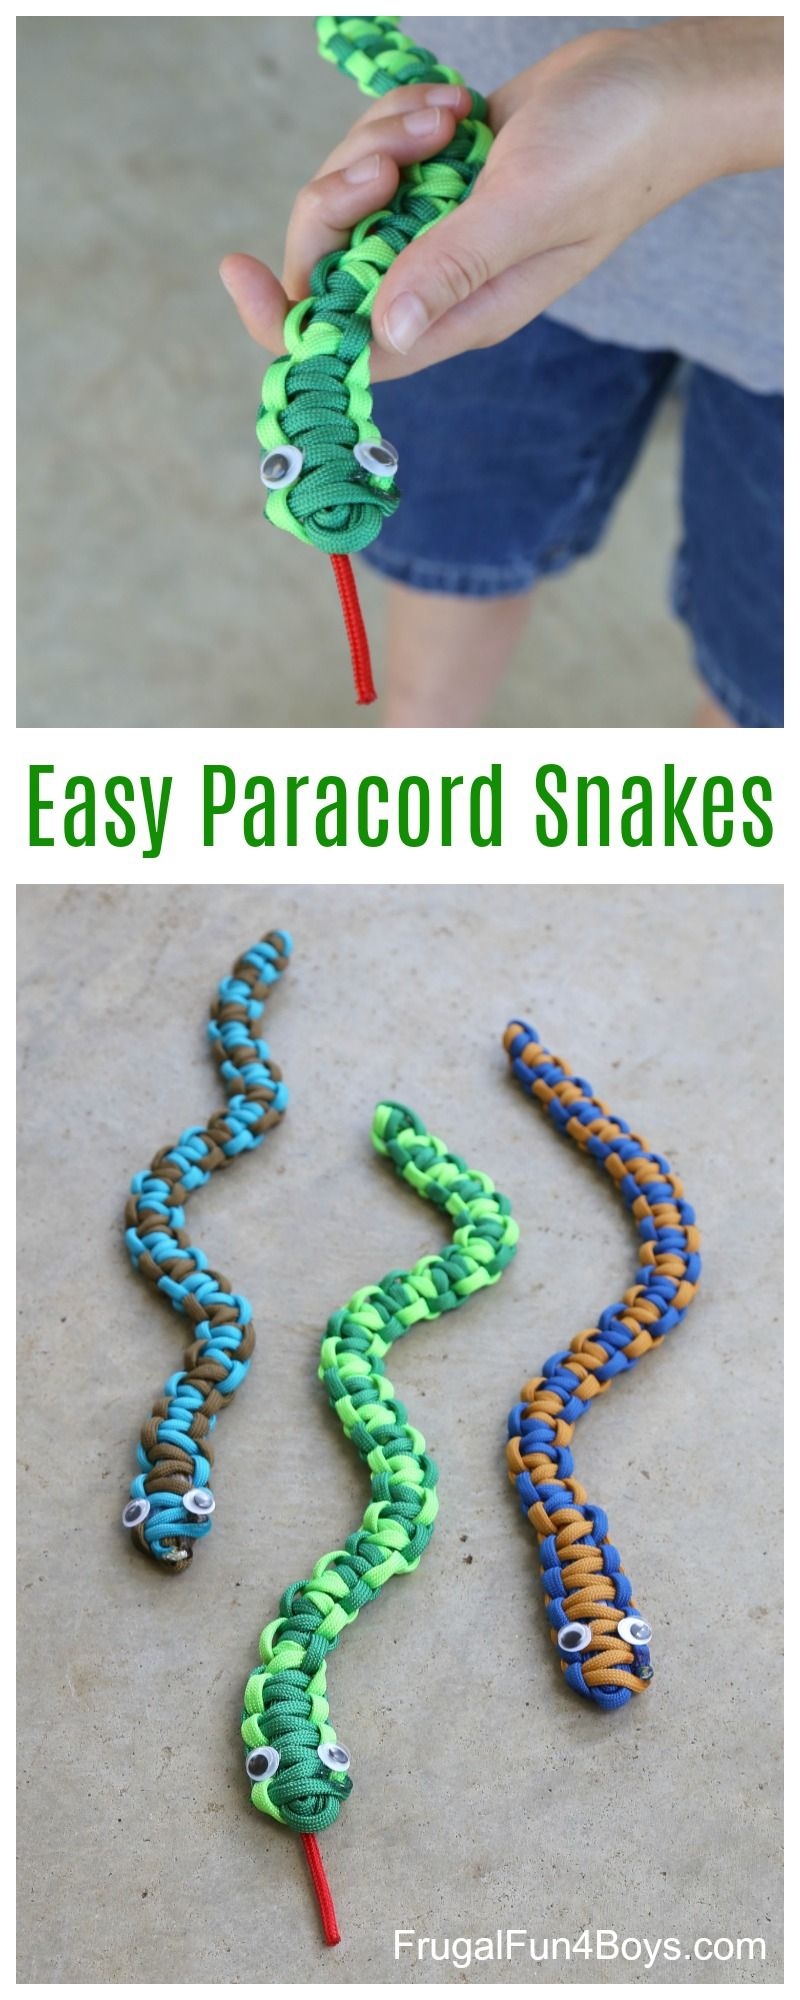 how to make easy paracord snakes paracord paracord